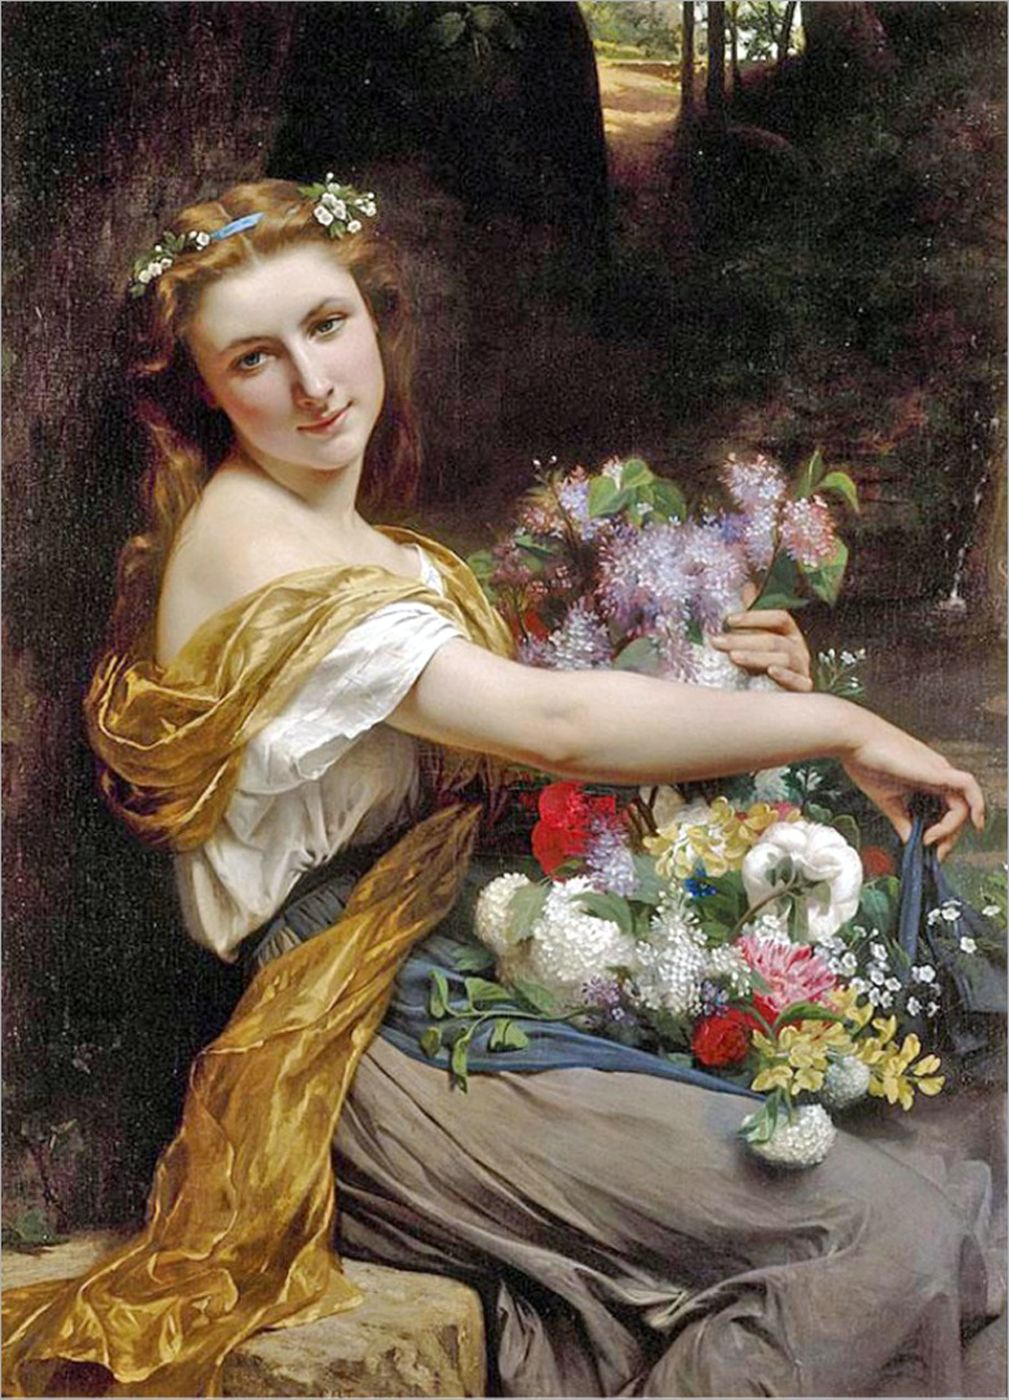 Pierre-Auguste Cot (1837-1883) Dionysia